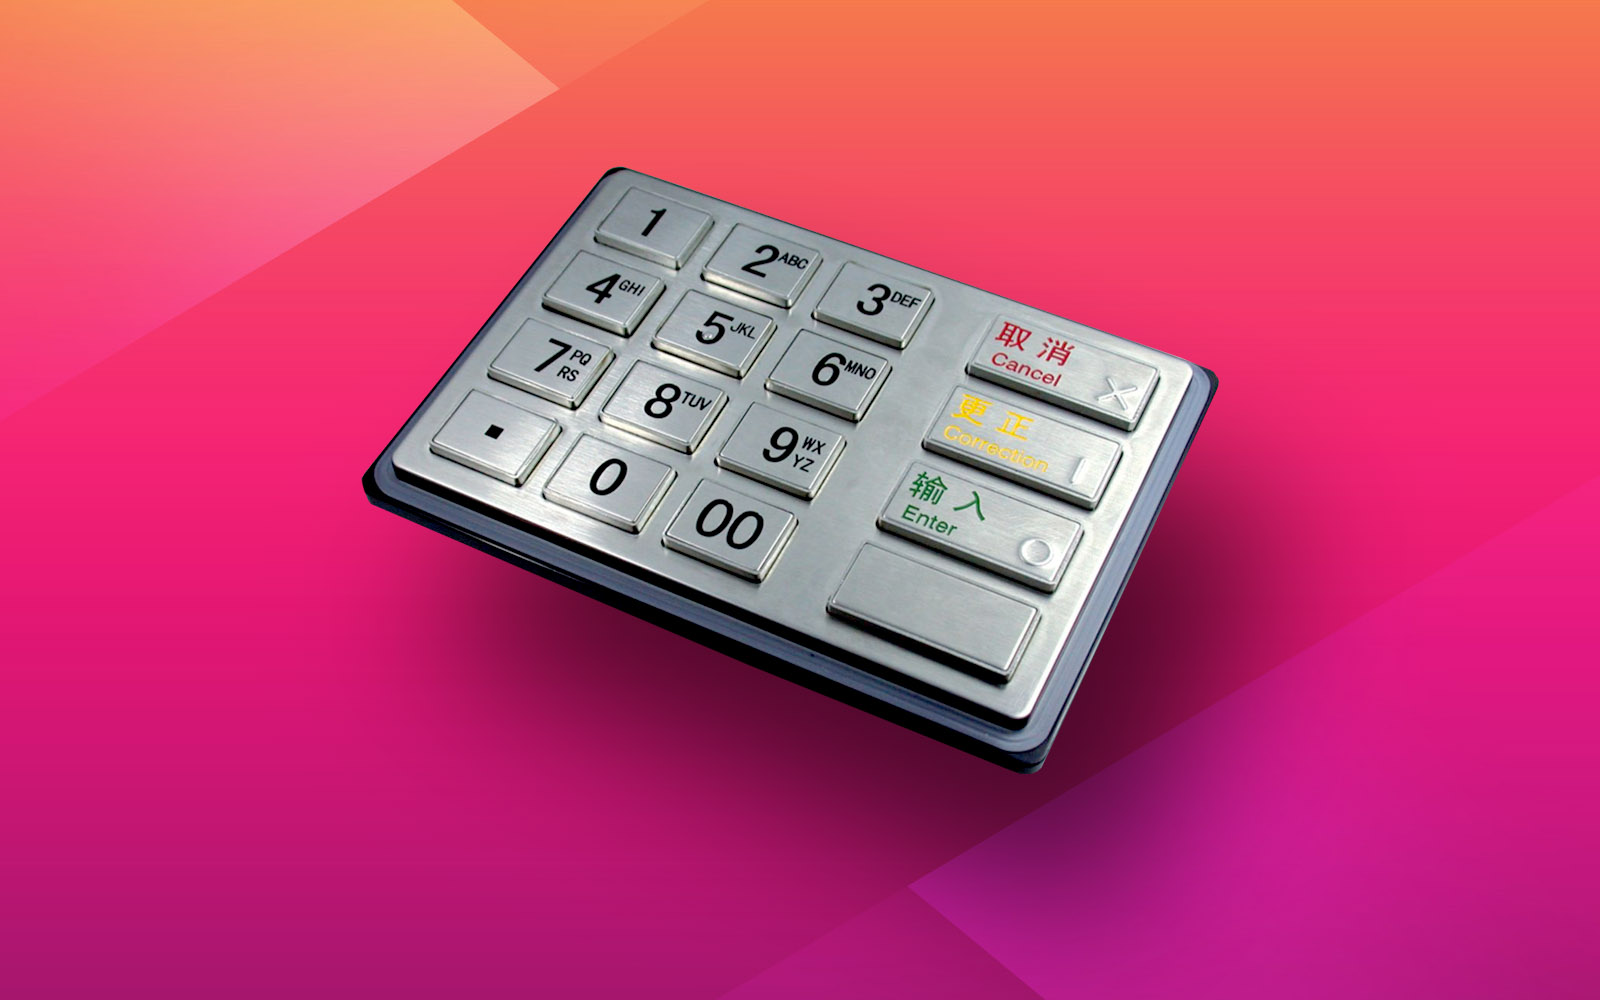 SZZT encrypted keypads was supported in JoinPOS for vending machines